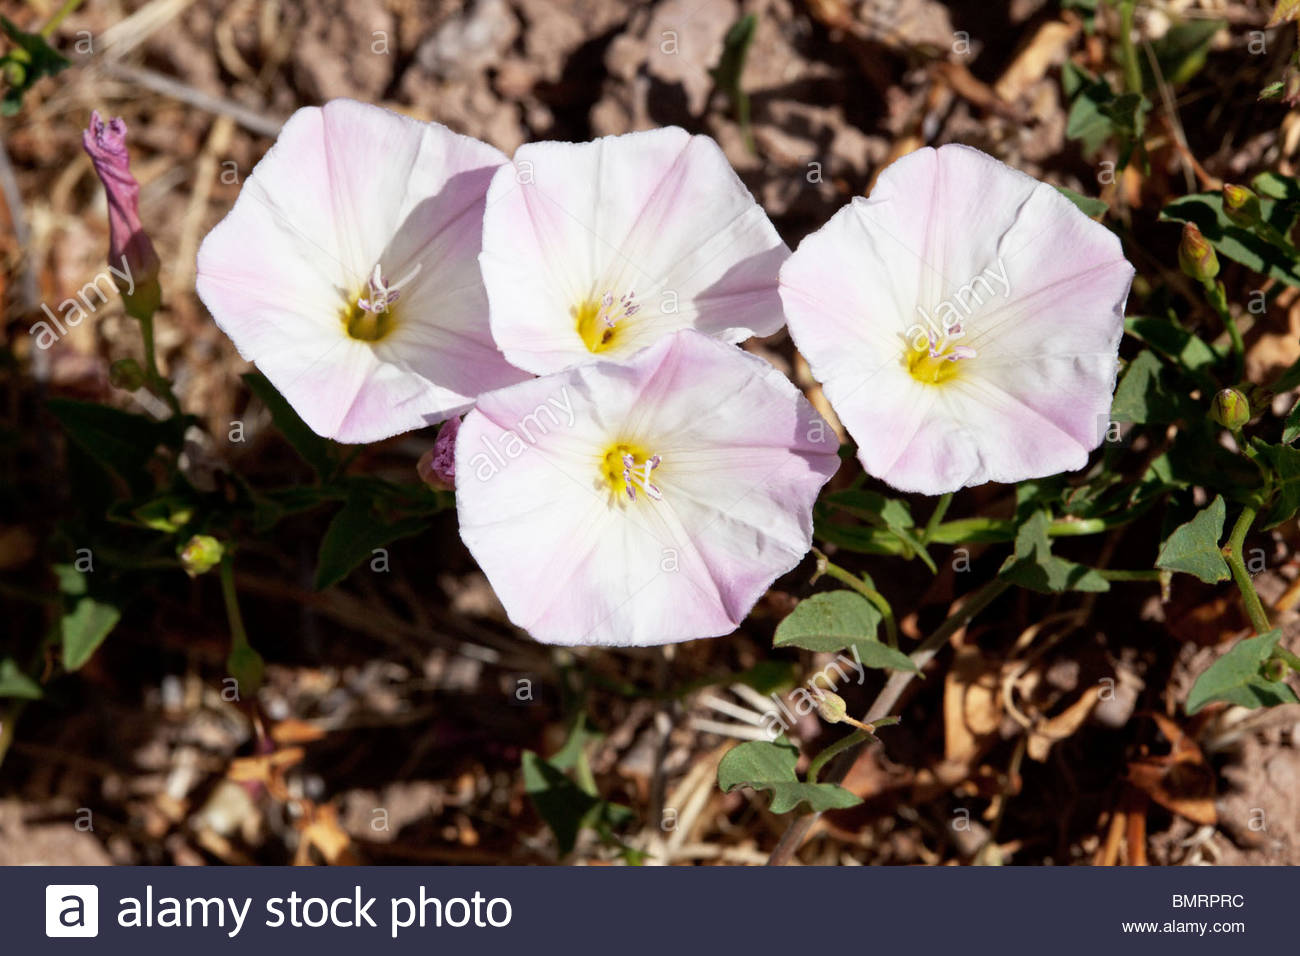 Field Bindweed Convolvulus arvensis Arizona - Stock Image